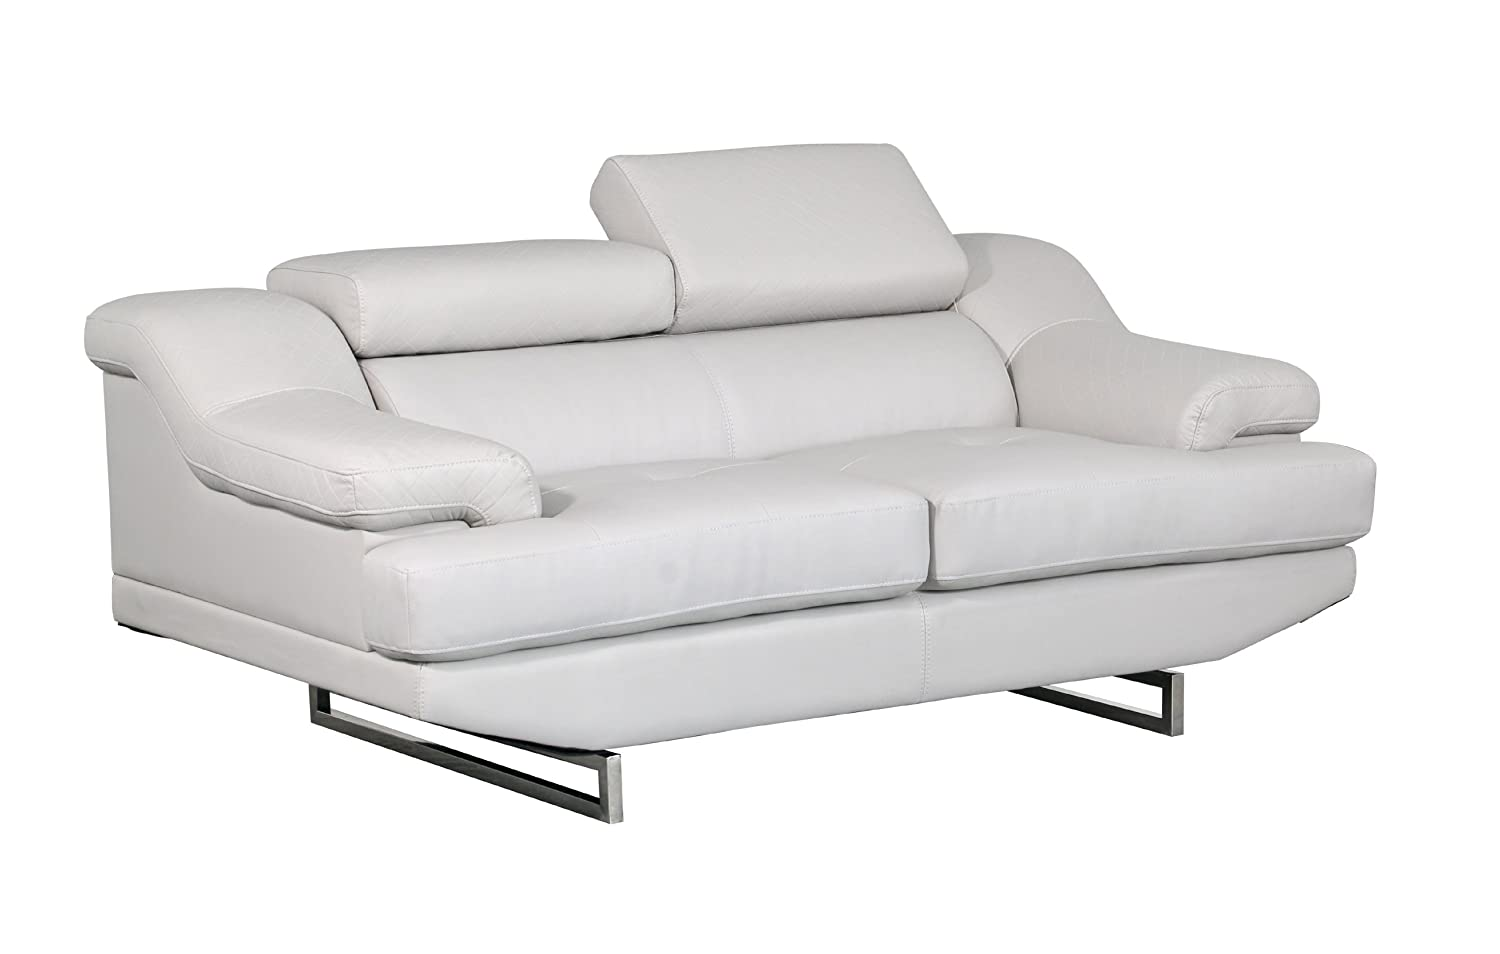 Global Furniture Natalie Loveseat - Light Grey and Wagner